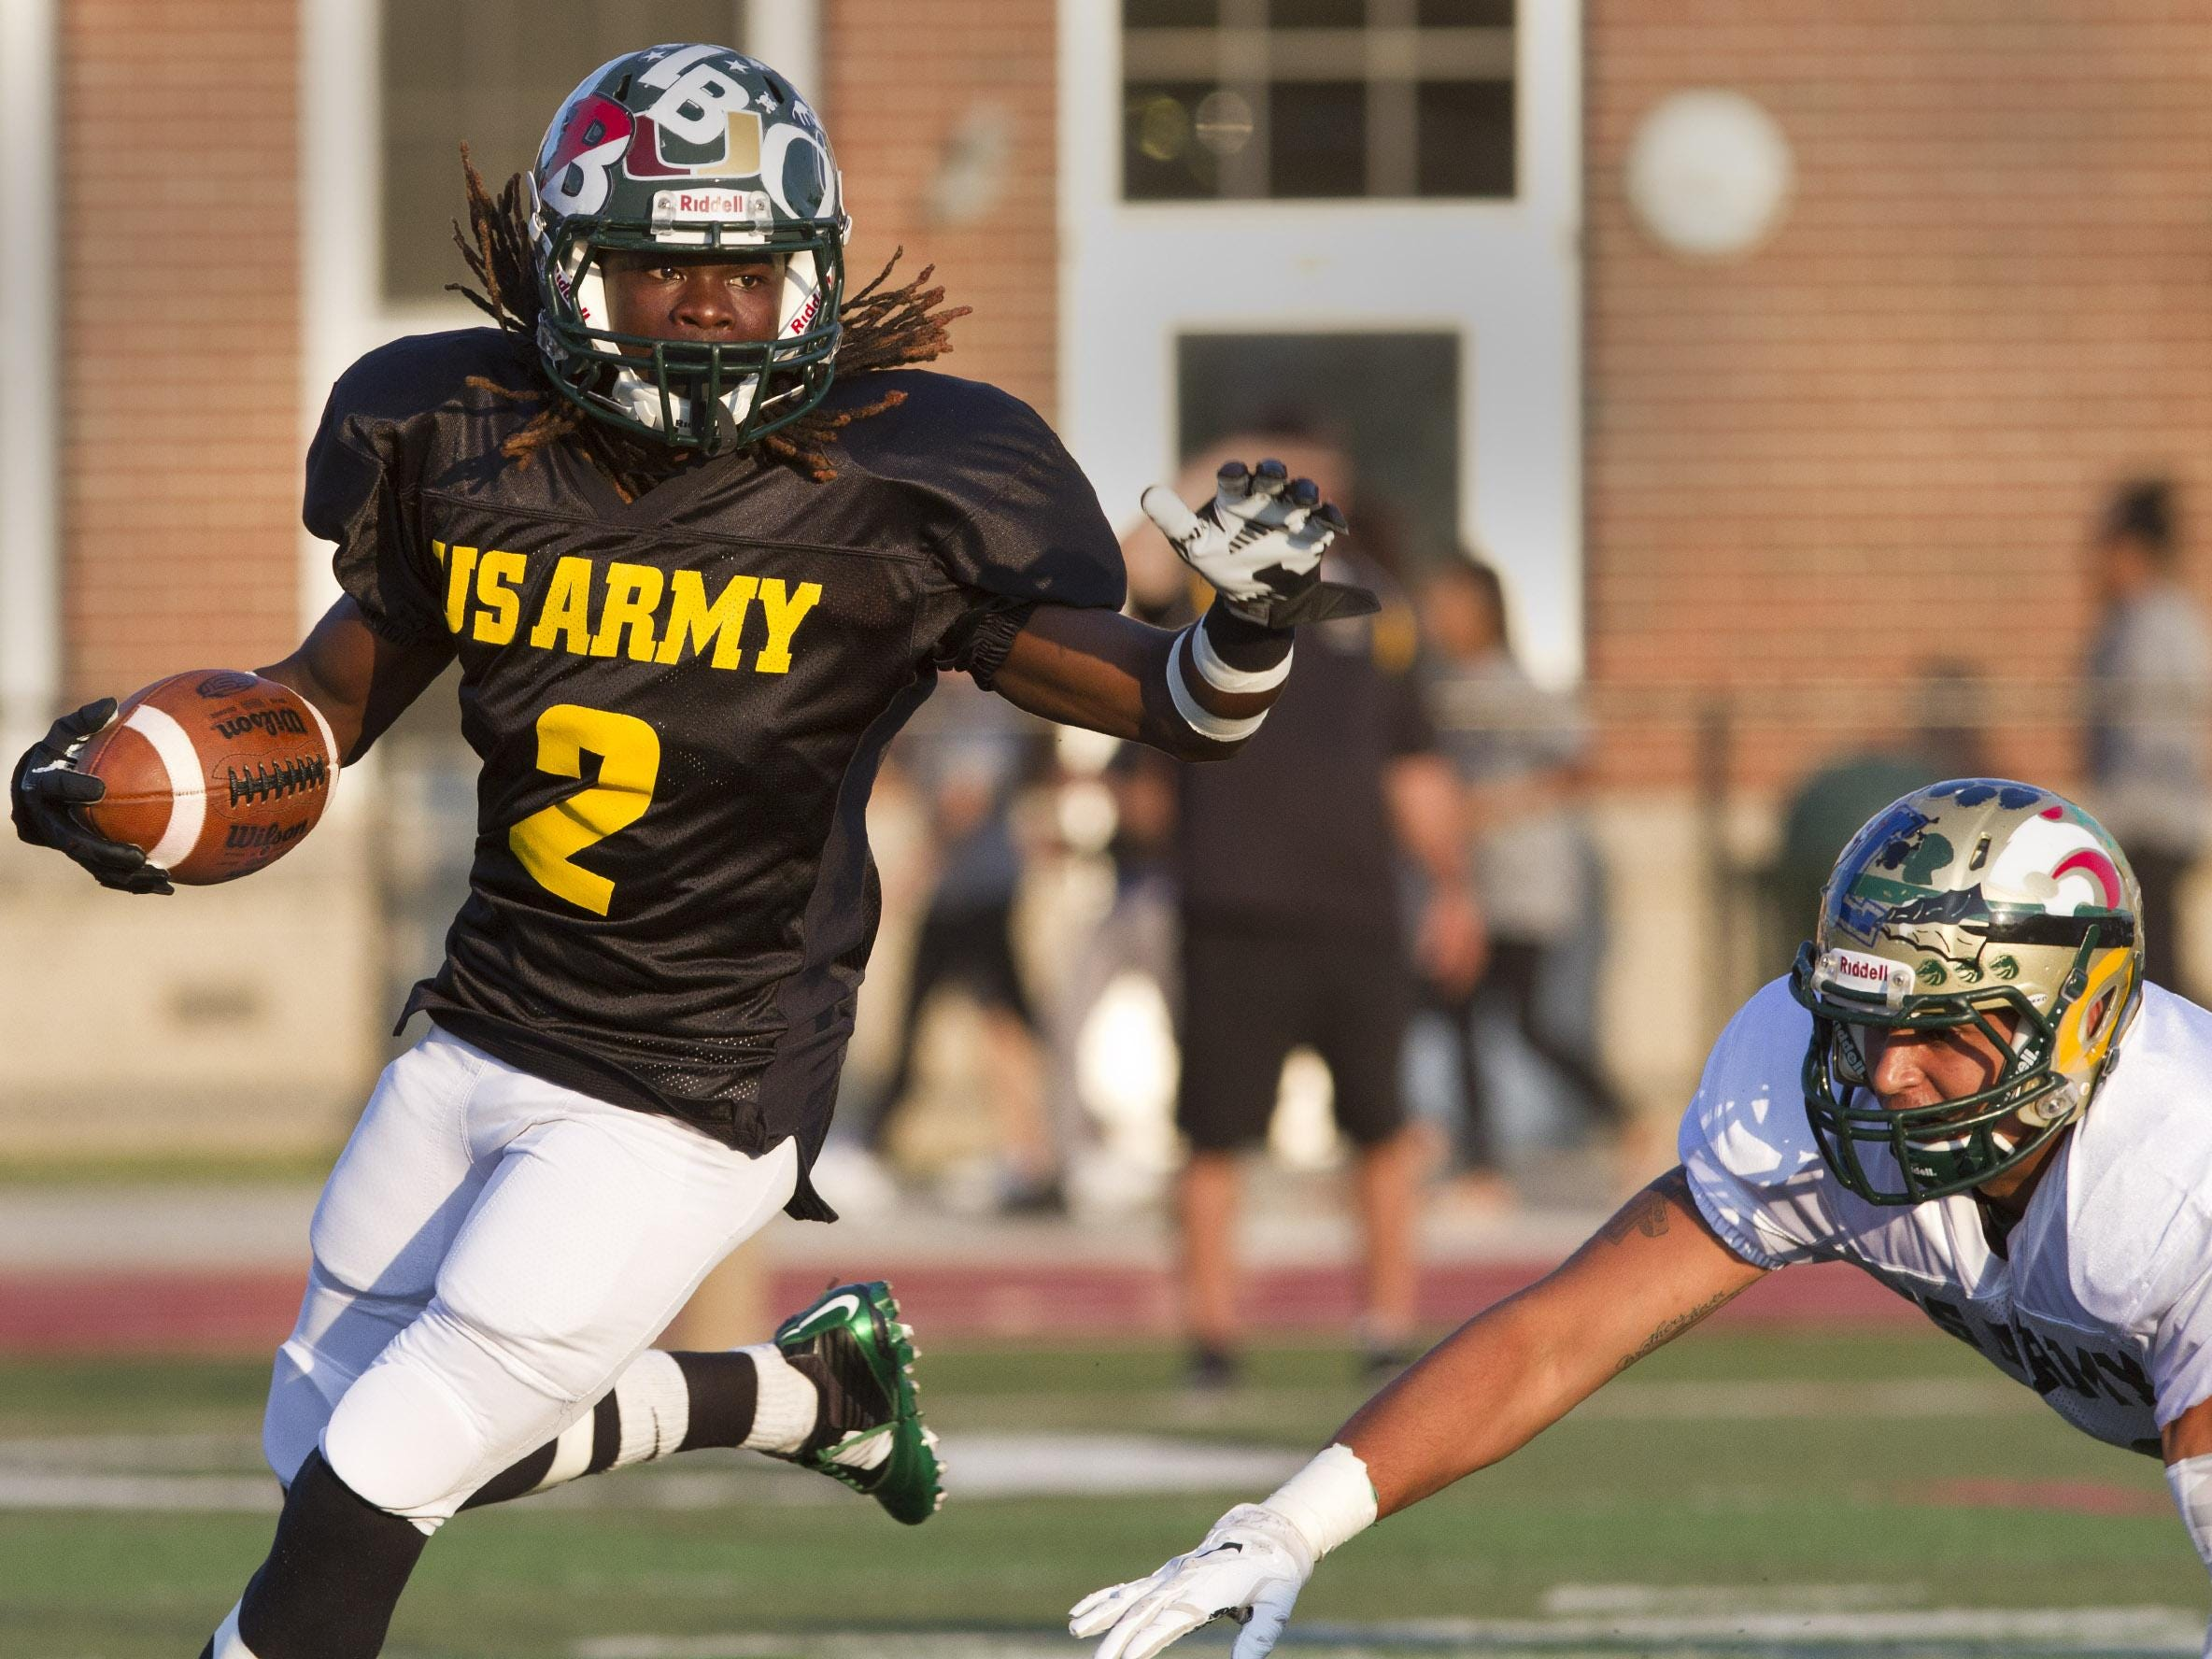 Long Branch's Dahmiere Willis gains yards in the first half of the 2015 U.S. Army All-Shore Gridiron Classic at Long Branch High School on Thursday.